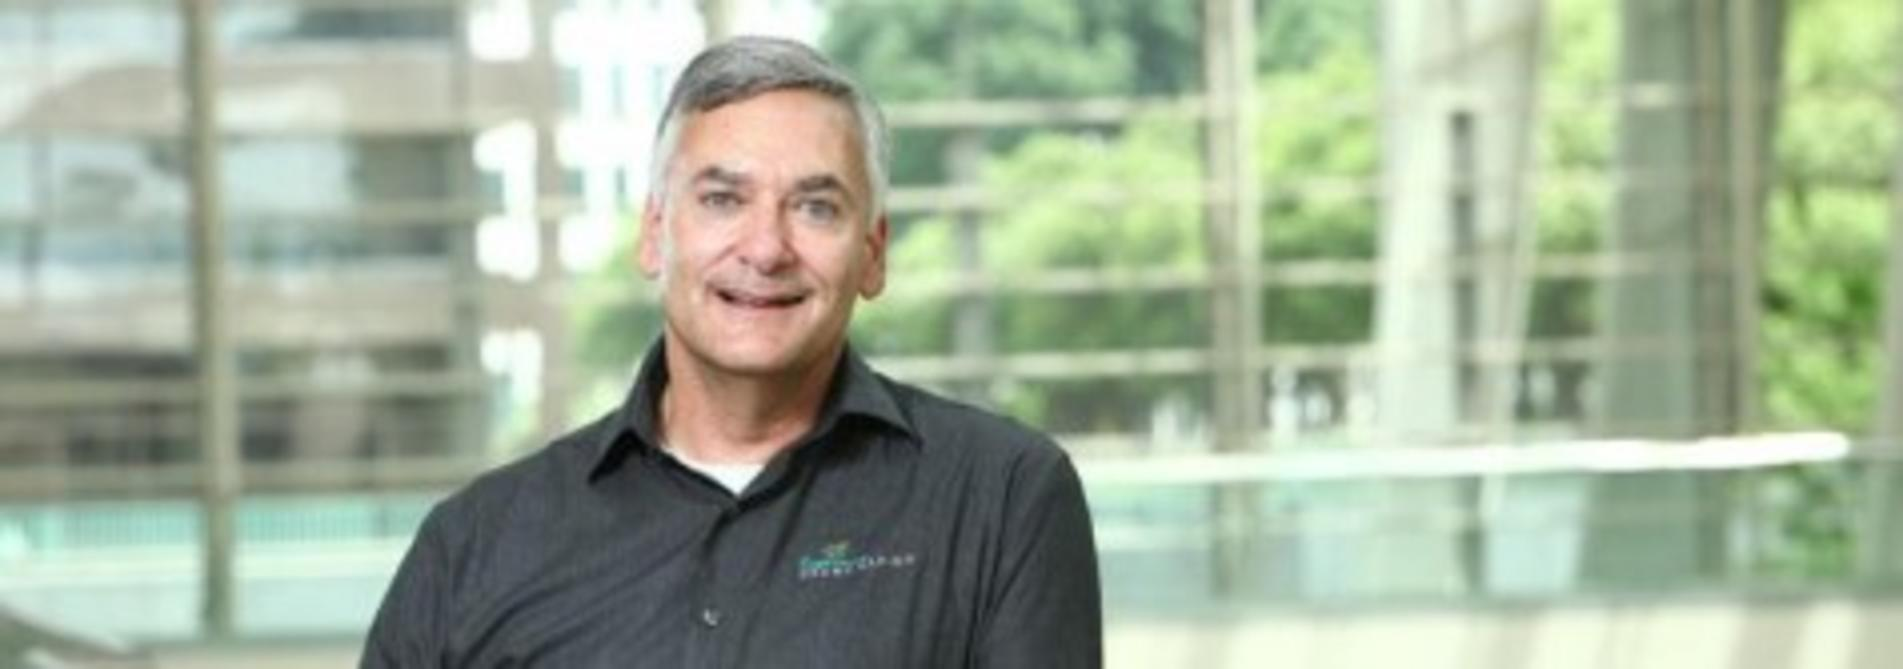 Tim Nelson, Convention Services Manager with Experience Grand Rapids